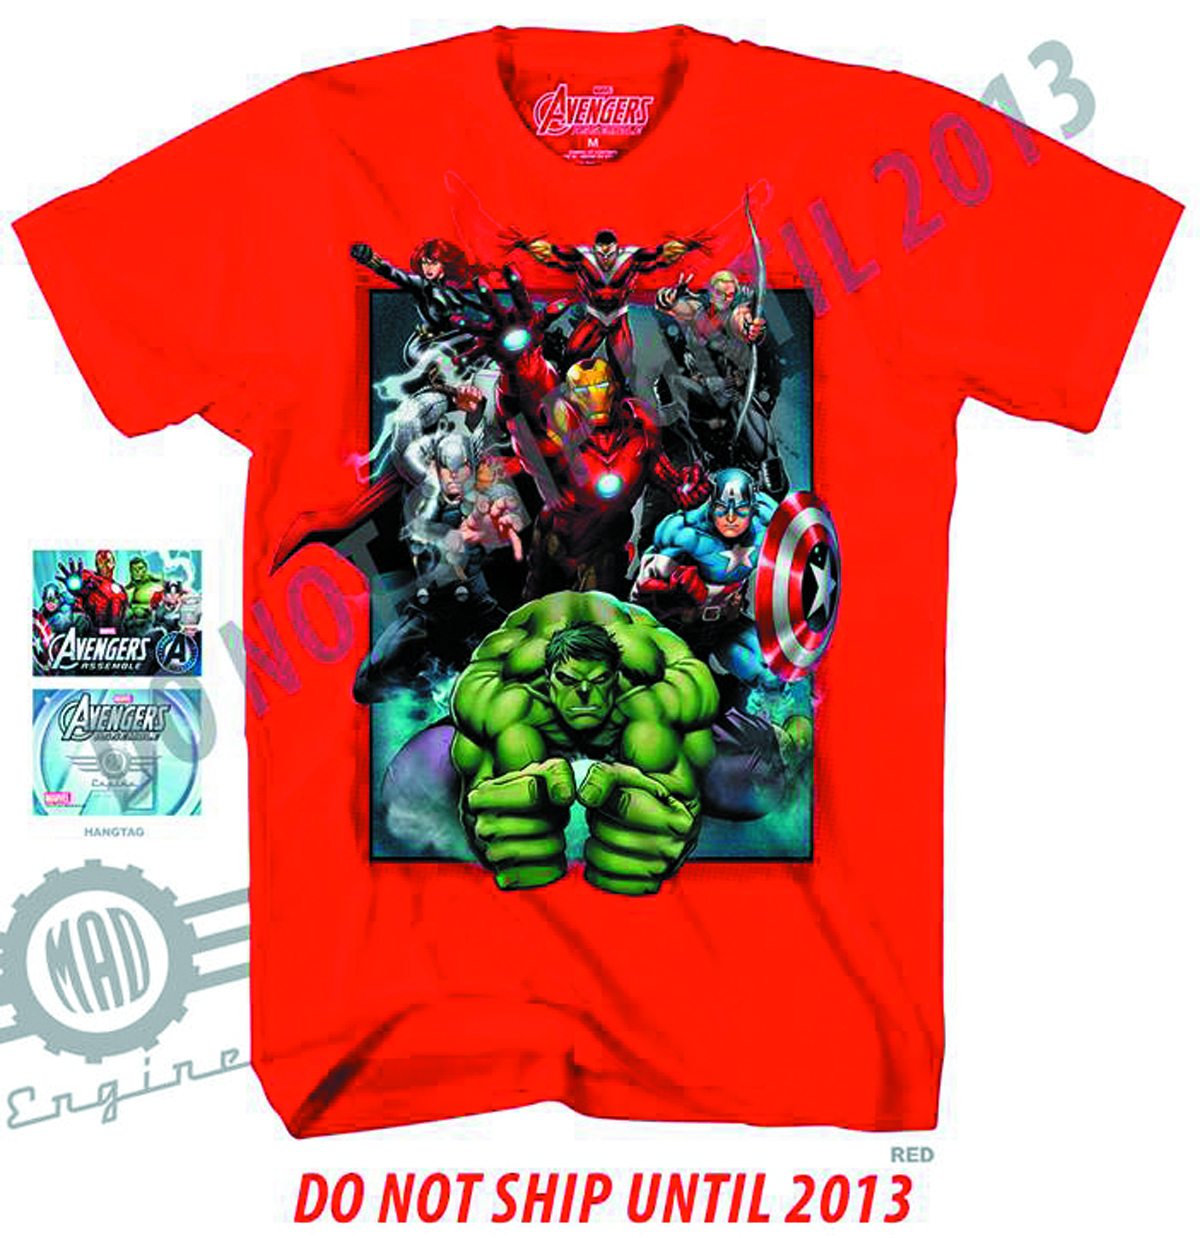 AVENGERS ASSEMBLE BOXED IN RED T/S MED